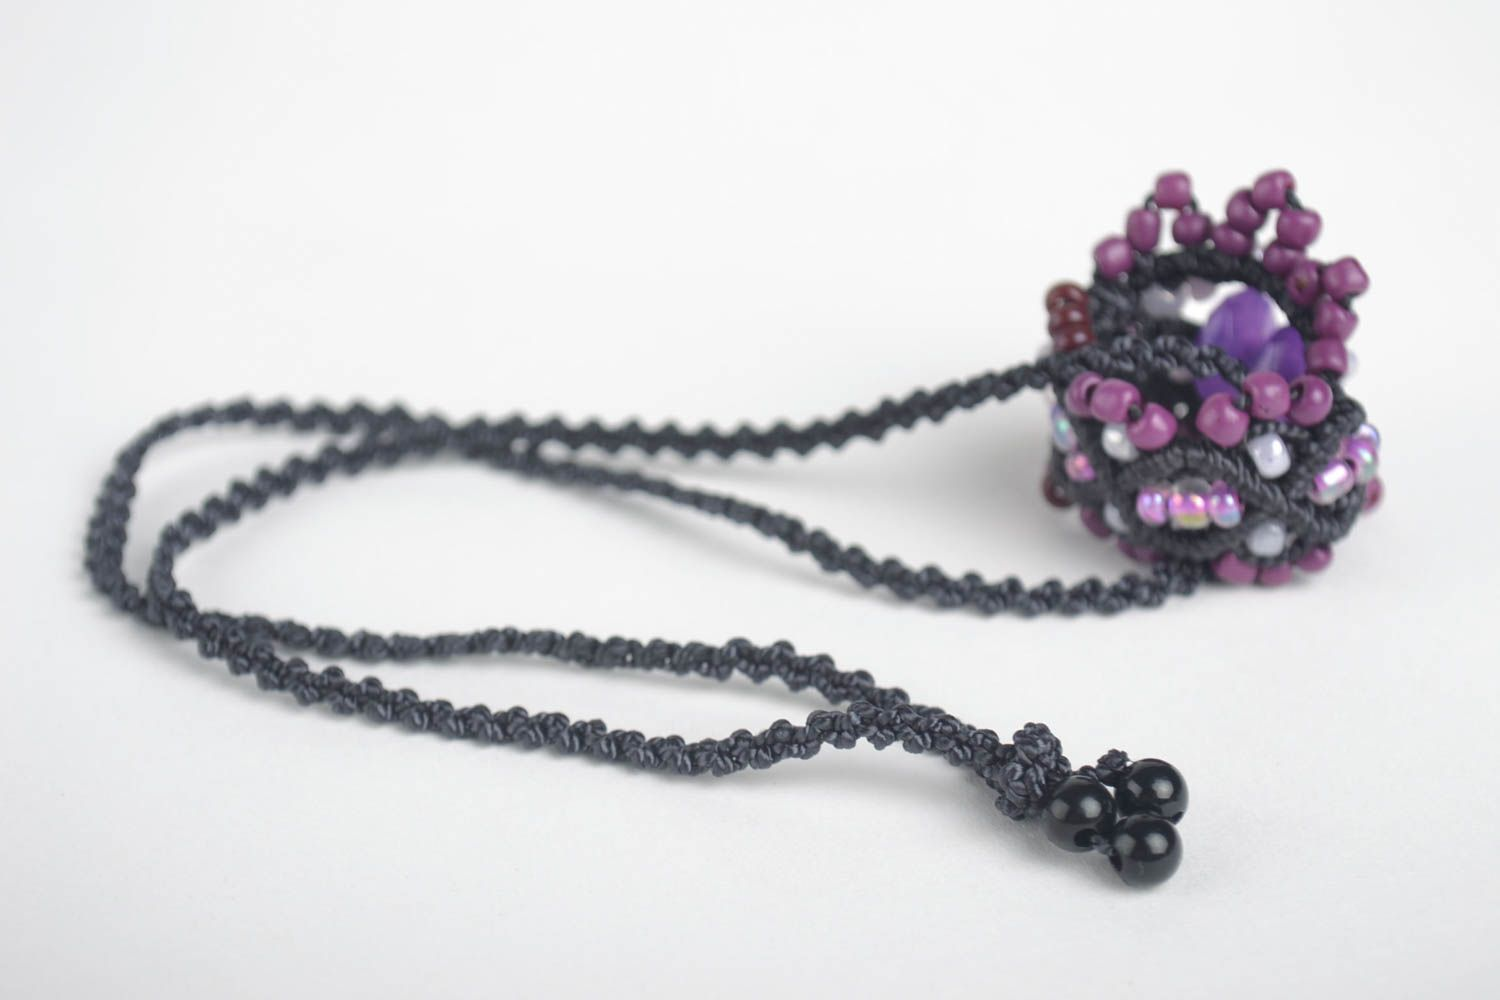 Macrame necklace handmade necklace homemade jewelry women accessories gift ideas photo 3